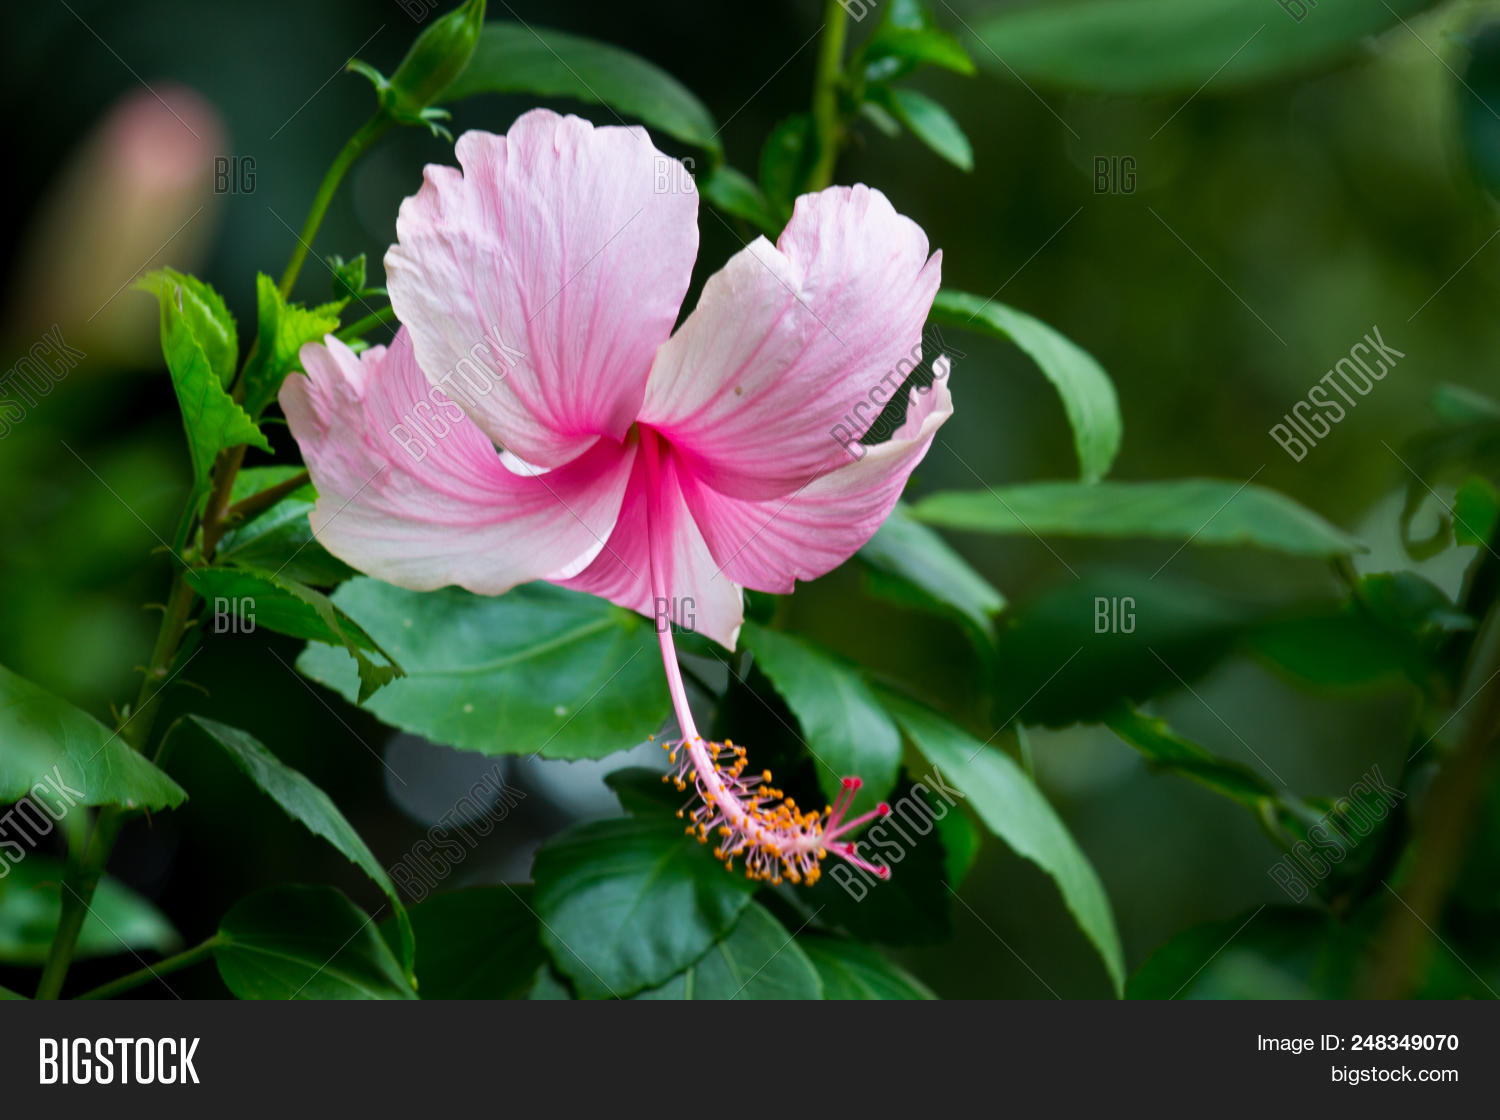 A Pink Hibiscus Flower Handing Downwards From The Tree Photo Stock